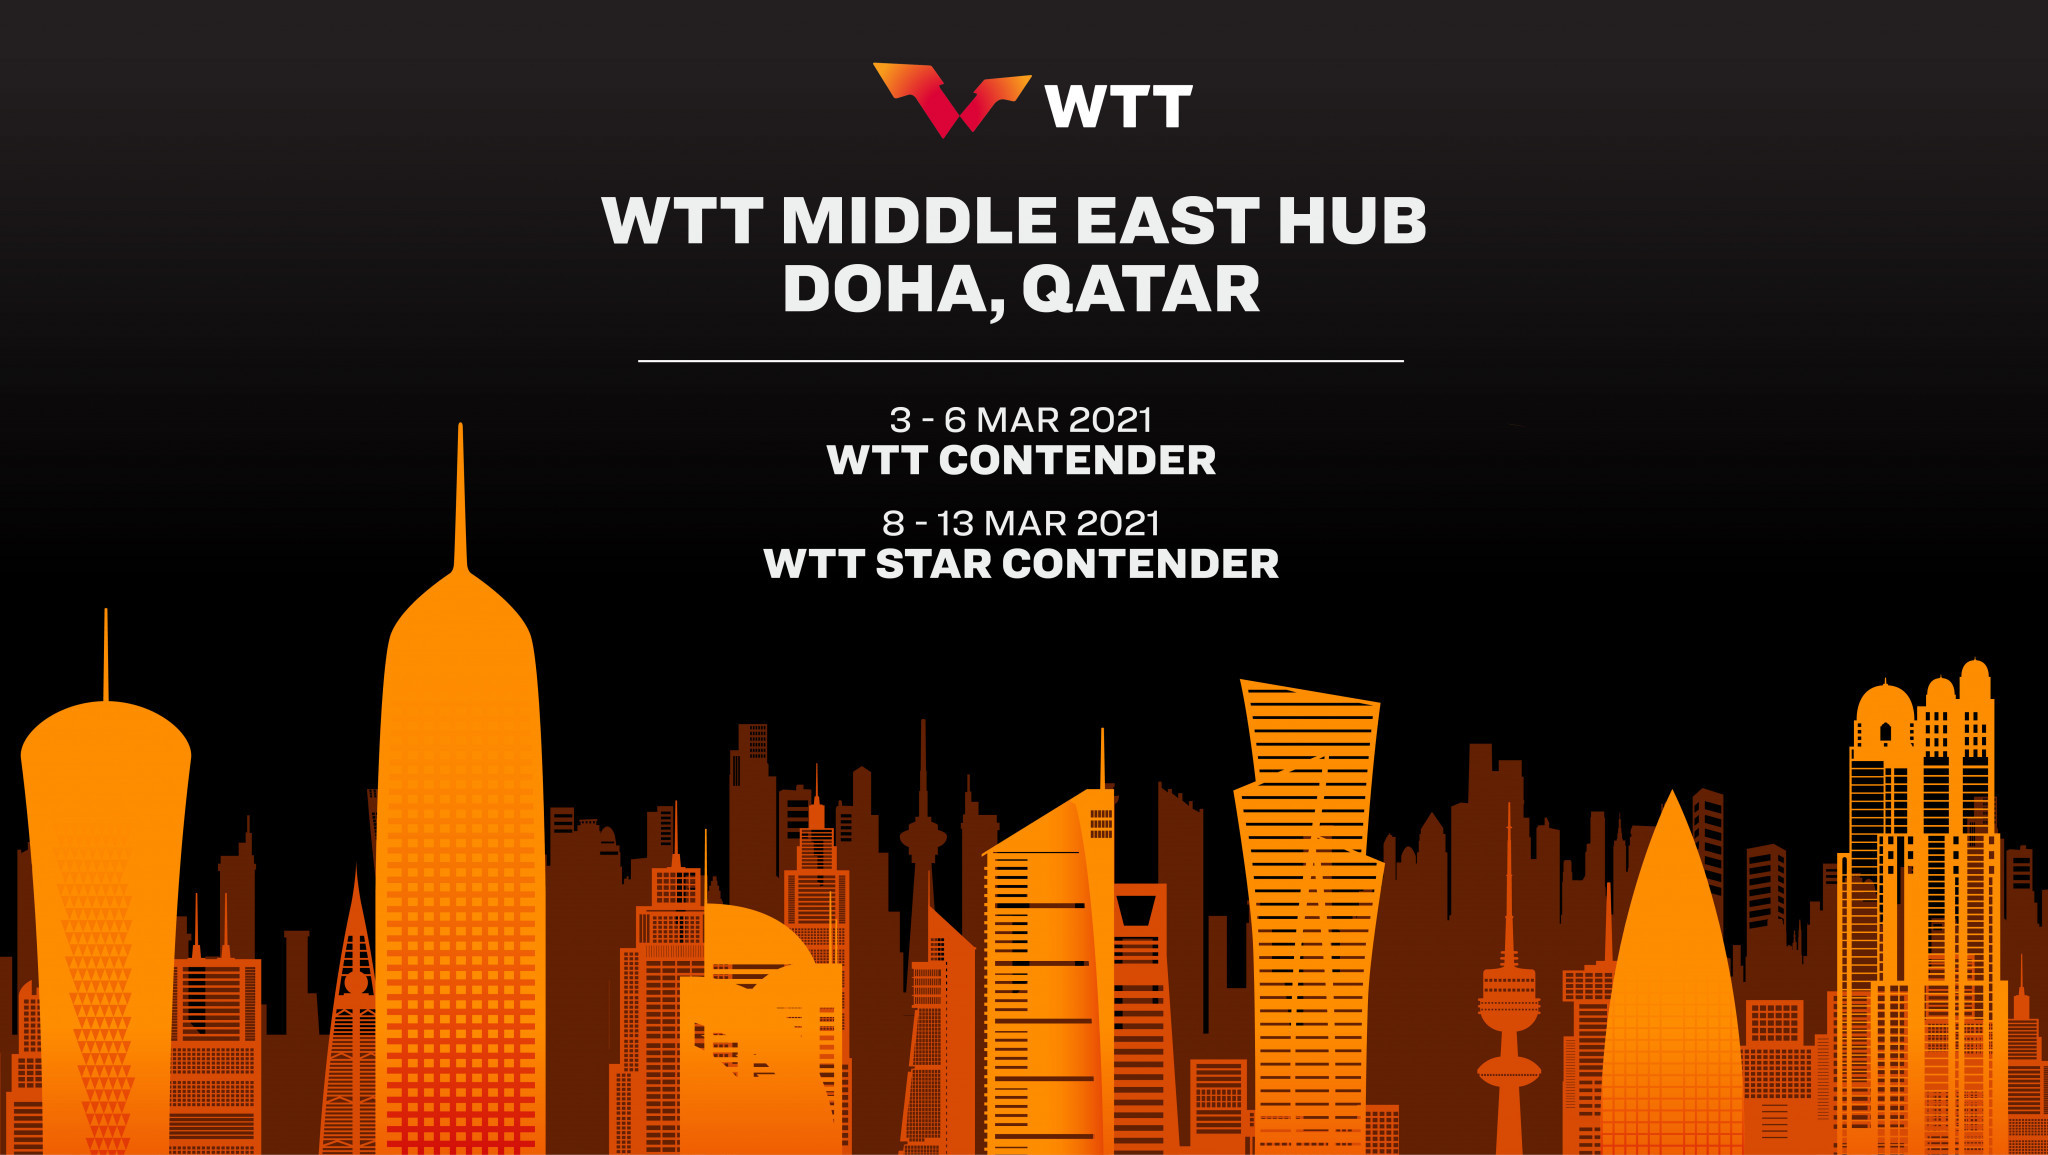 Doha is set to be the first World Table Tennis hub location ©WTT